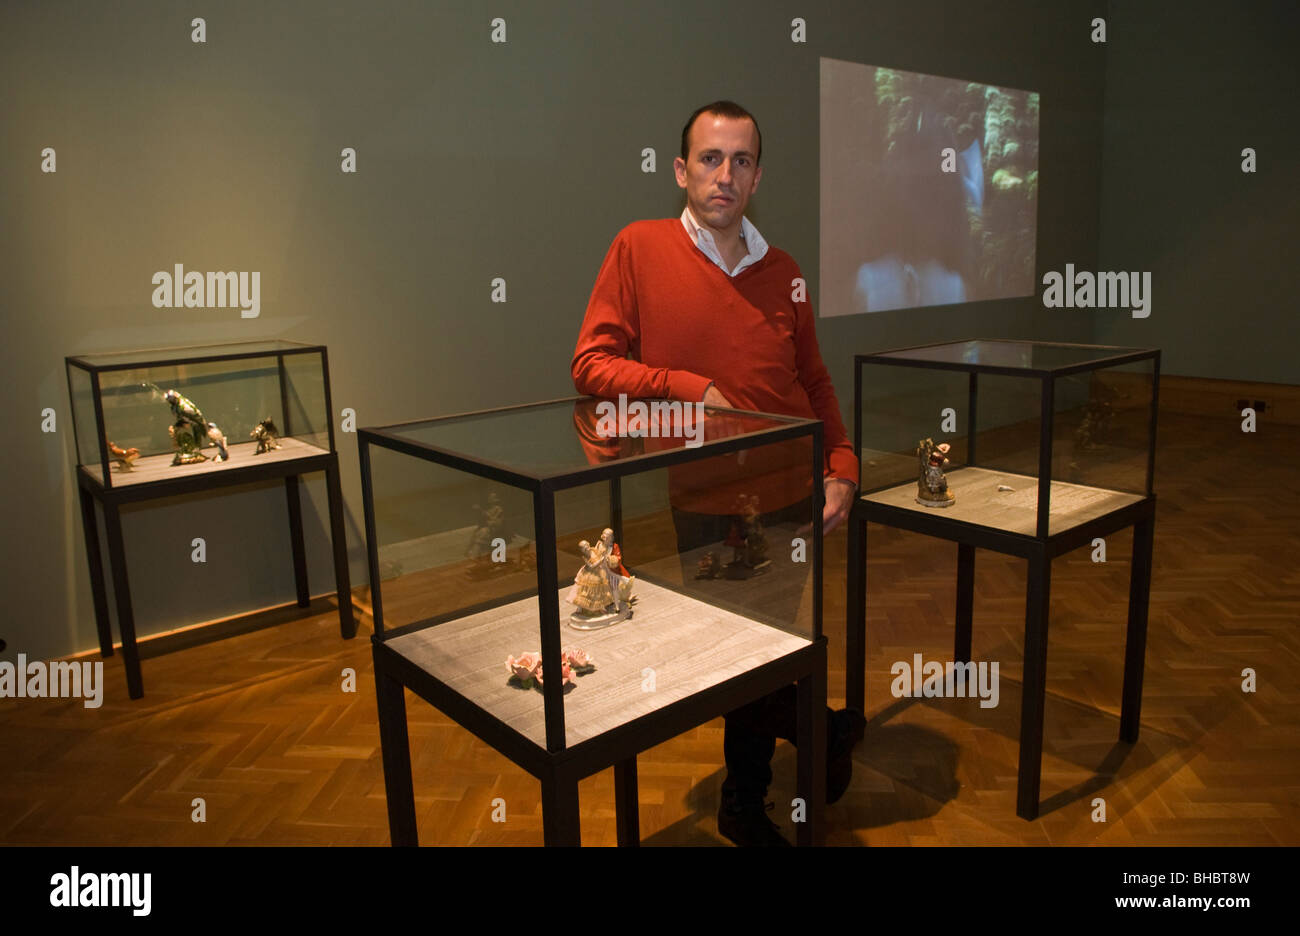 Portuguese artist Vasco Araujo with artwork on show at artes mundi 2008 Wales International Visual Art Exhibition - Stock Image